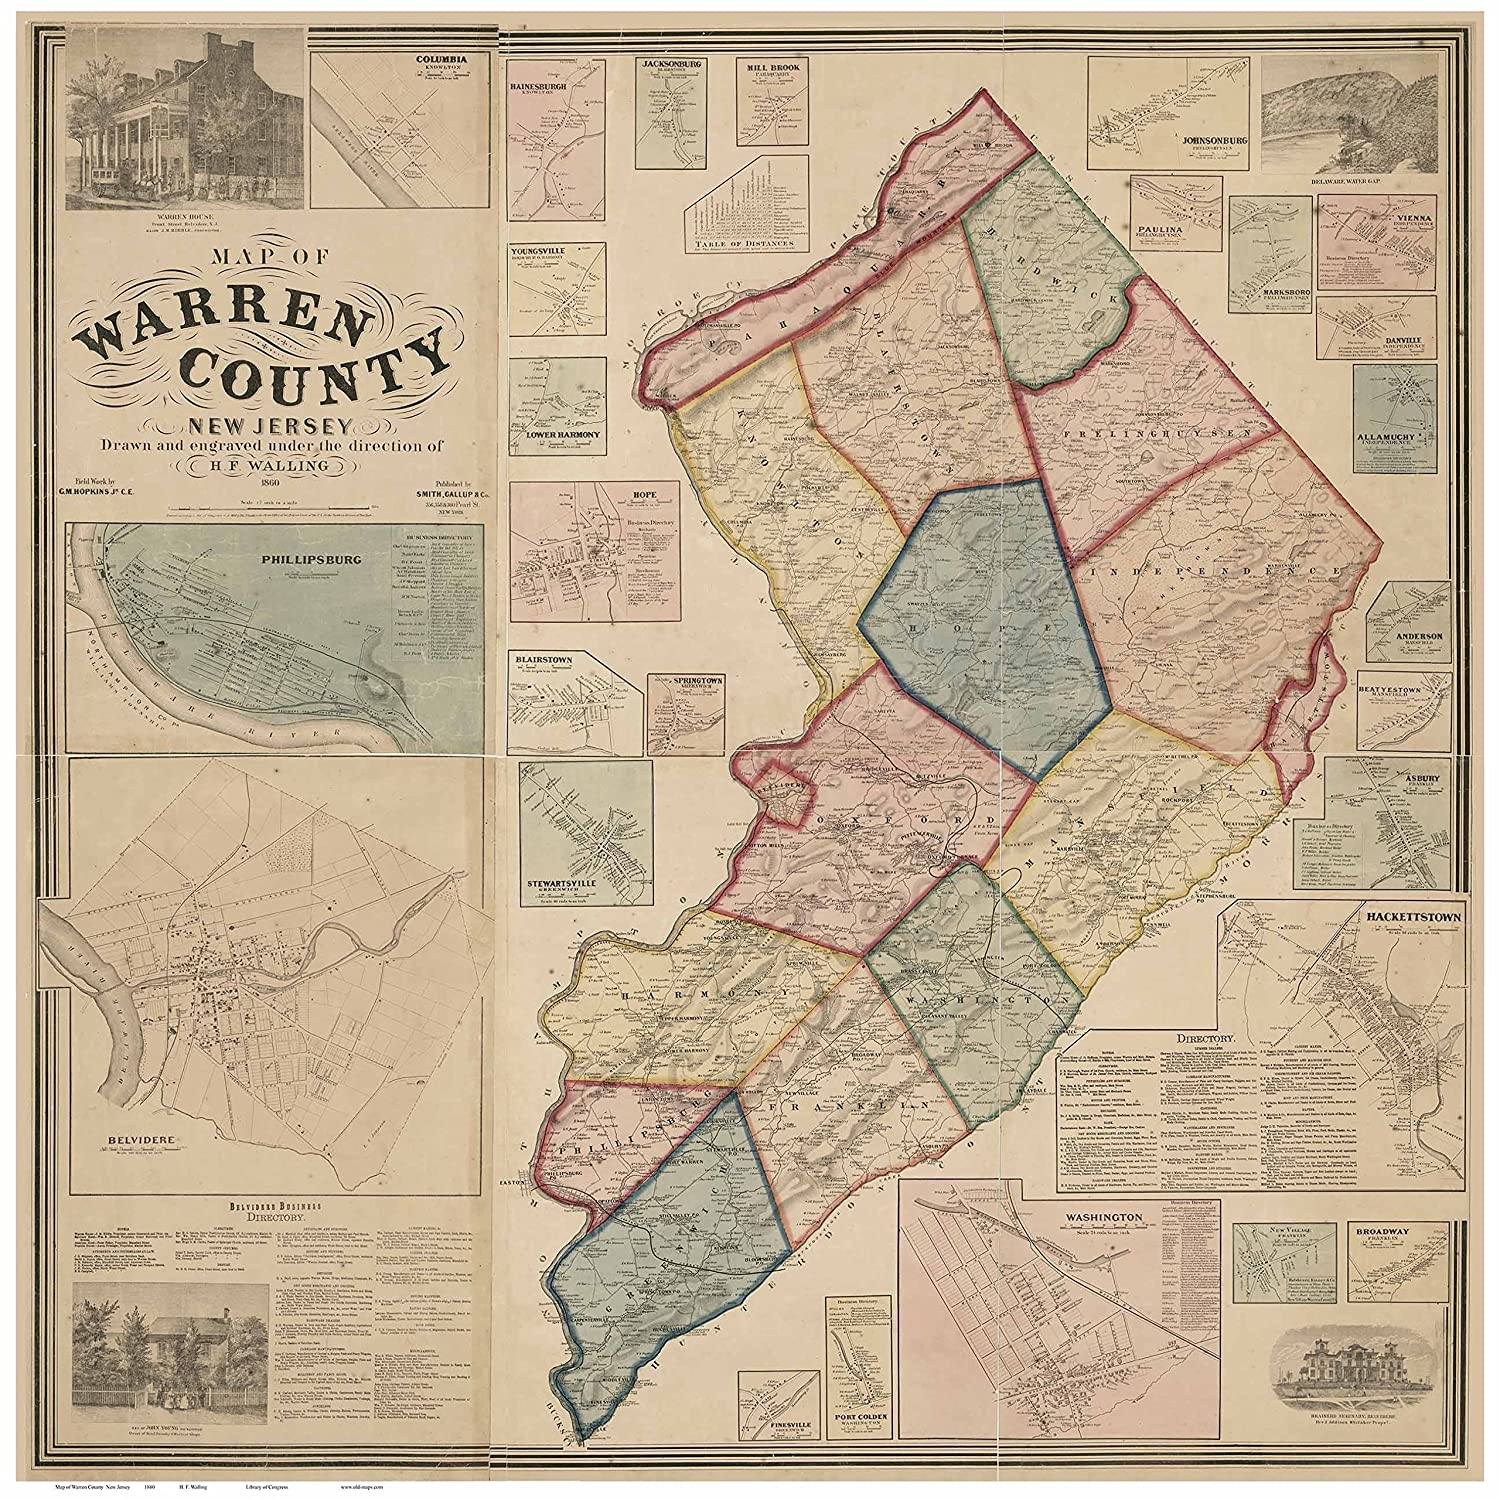 Amazon.com: Warren County New Jersey 1860 - Wall Map with ... on map of west carrollton, map of petros, map pa county, map of oneida, map of worthington state forest, map of cook forest state park, map of clive, map of city of niagara falls, map of upper bucks, map of rock island state park, map of new carlisle, map of middleburg heights, map of clarion, map maine county, map of ebensburg, map of piketon, map of hazlehurst, new jersey warren county, map of axtell, map of windsor heights,